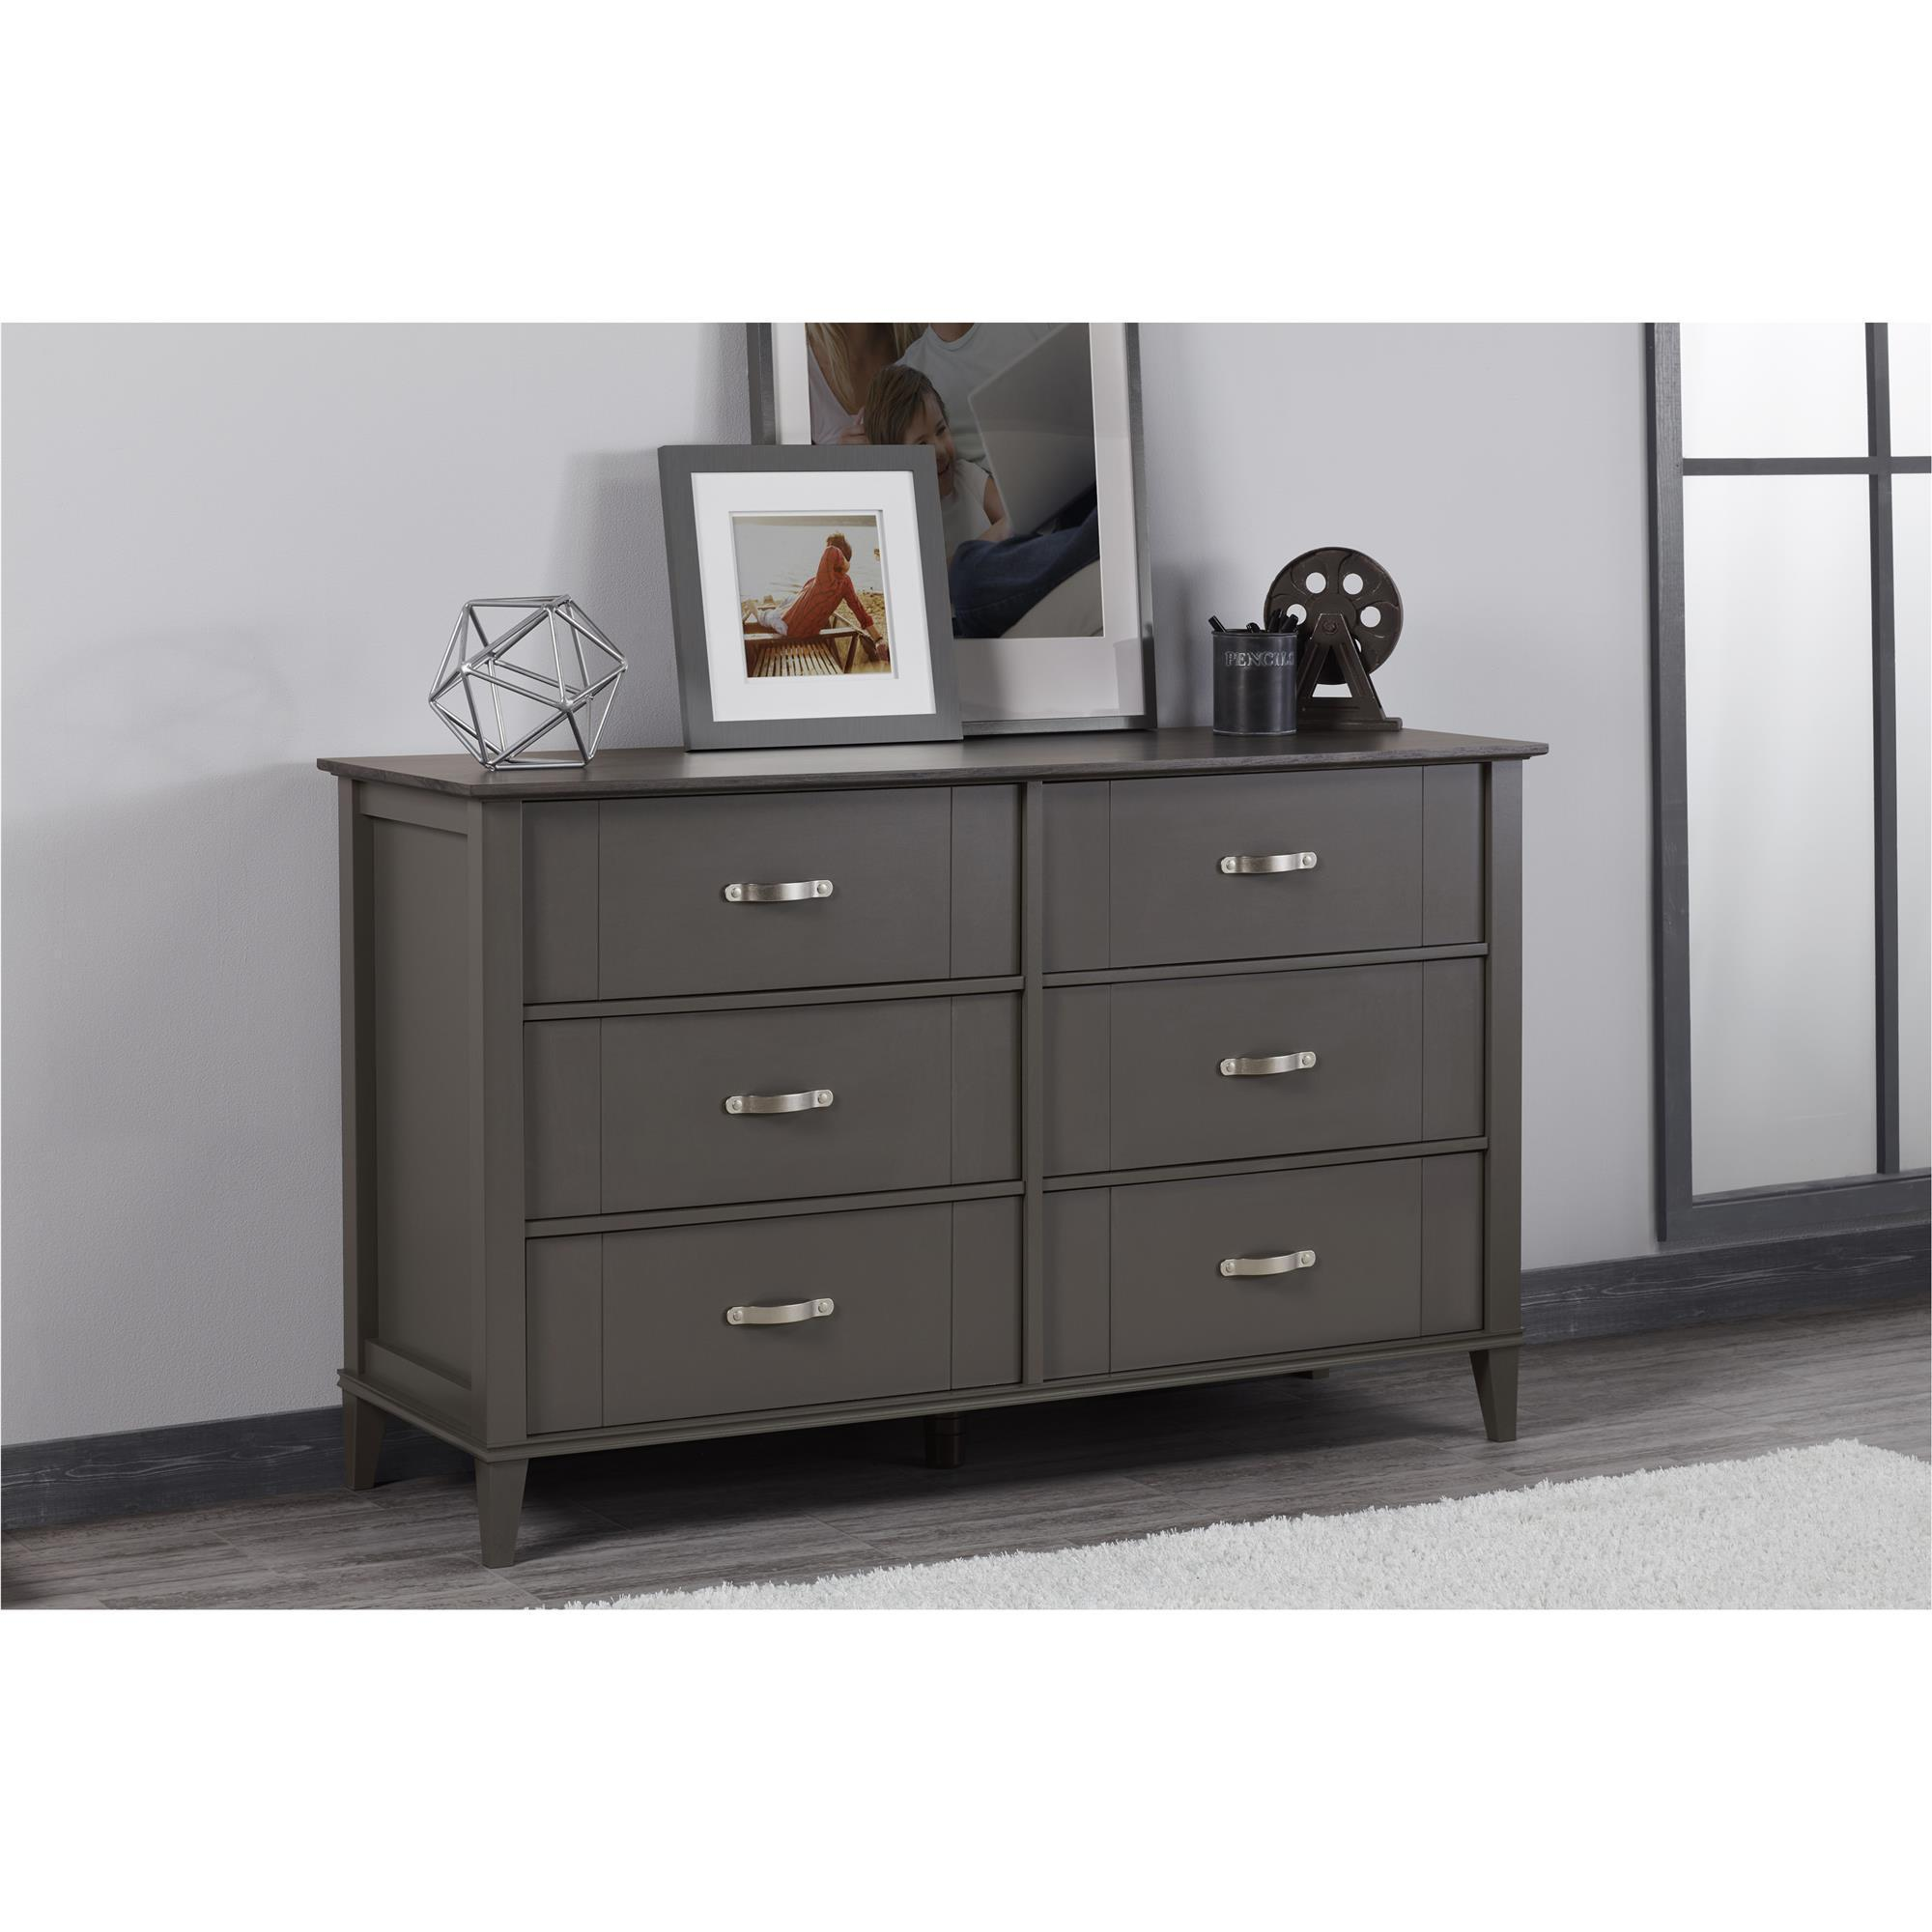 furniture beautiful bed the company black beside lowboy armoires hale by dressers dresser s lacquer children co seaside